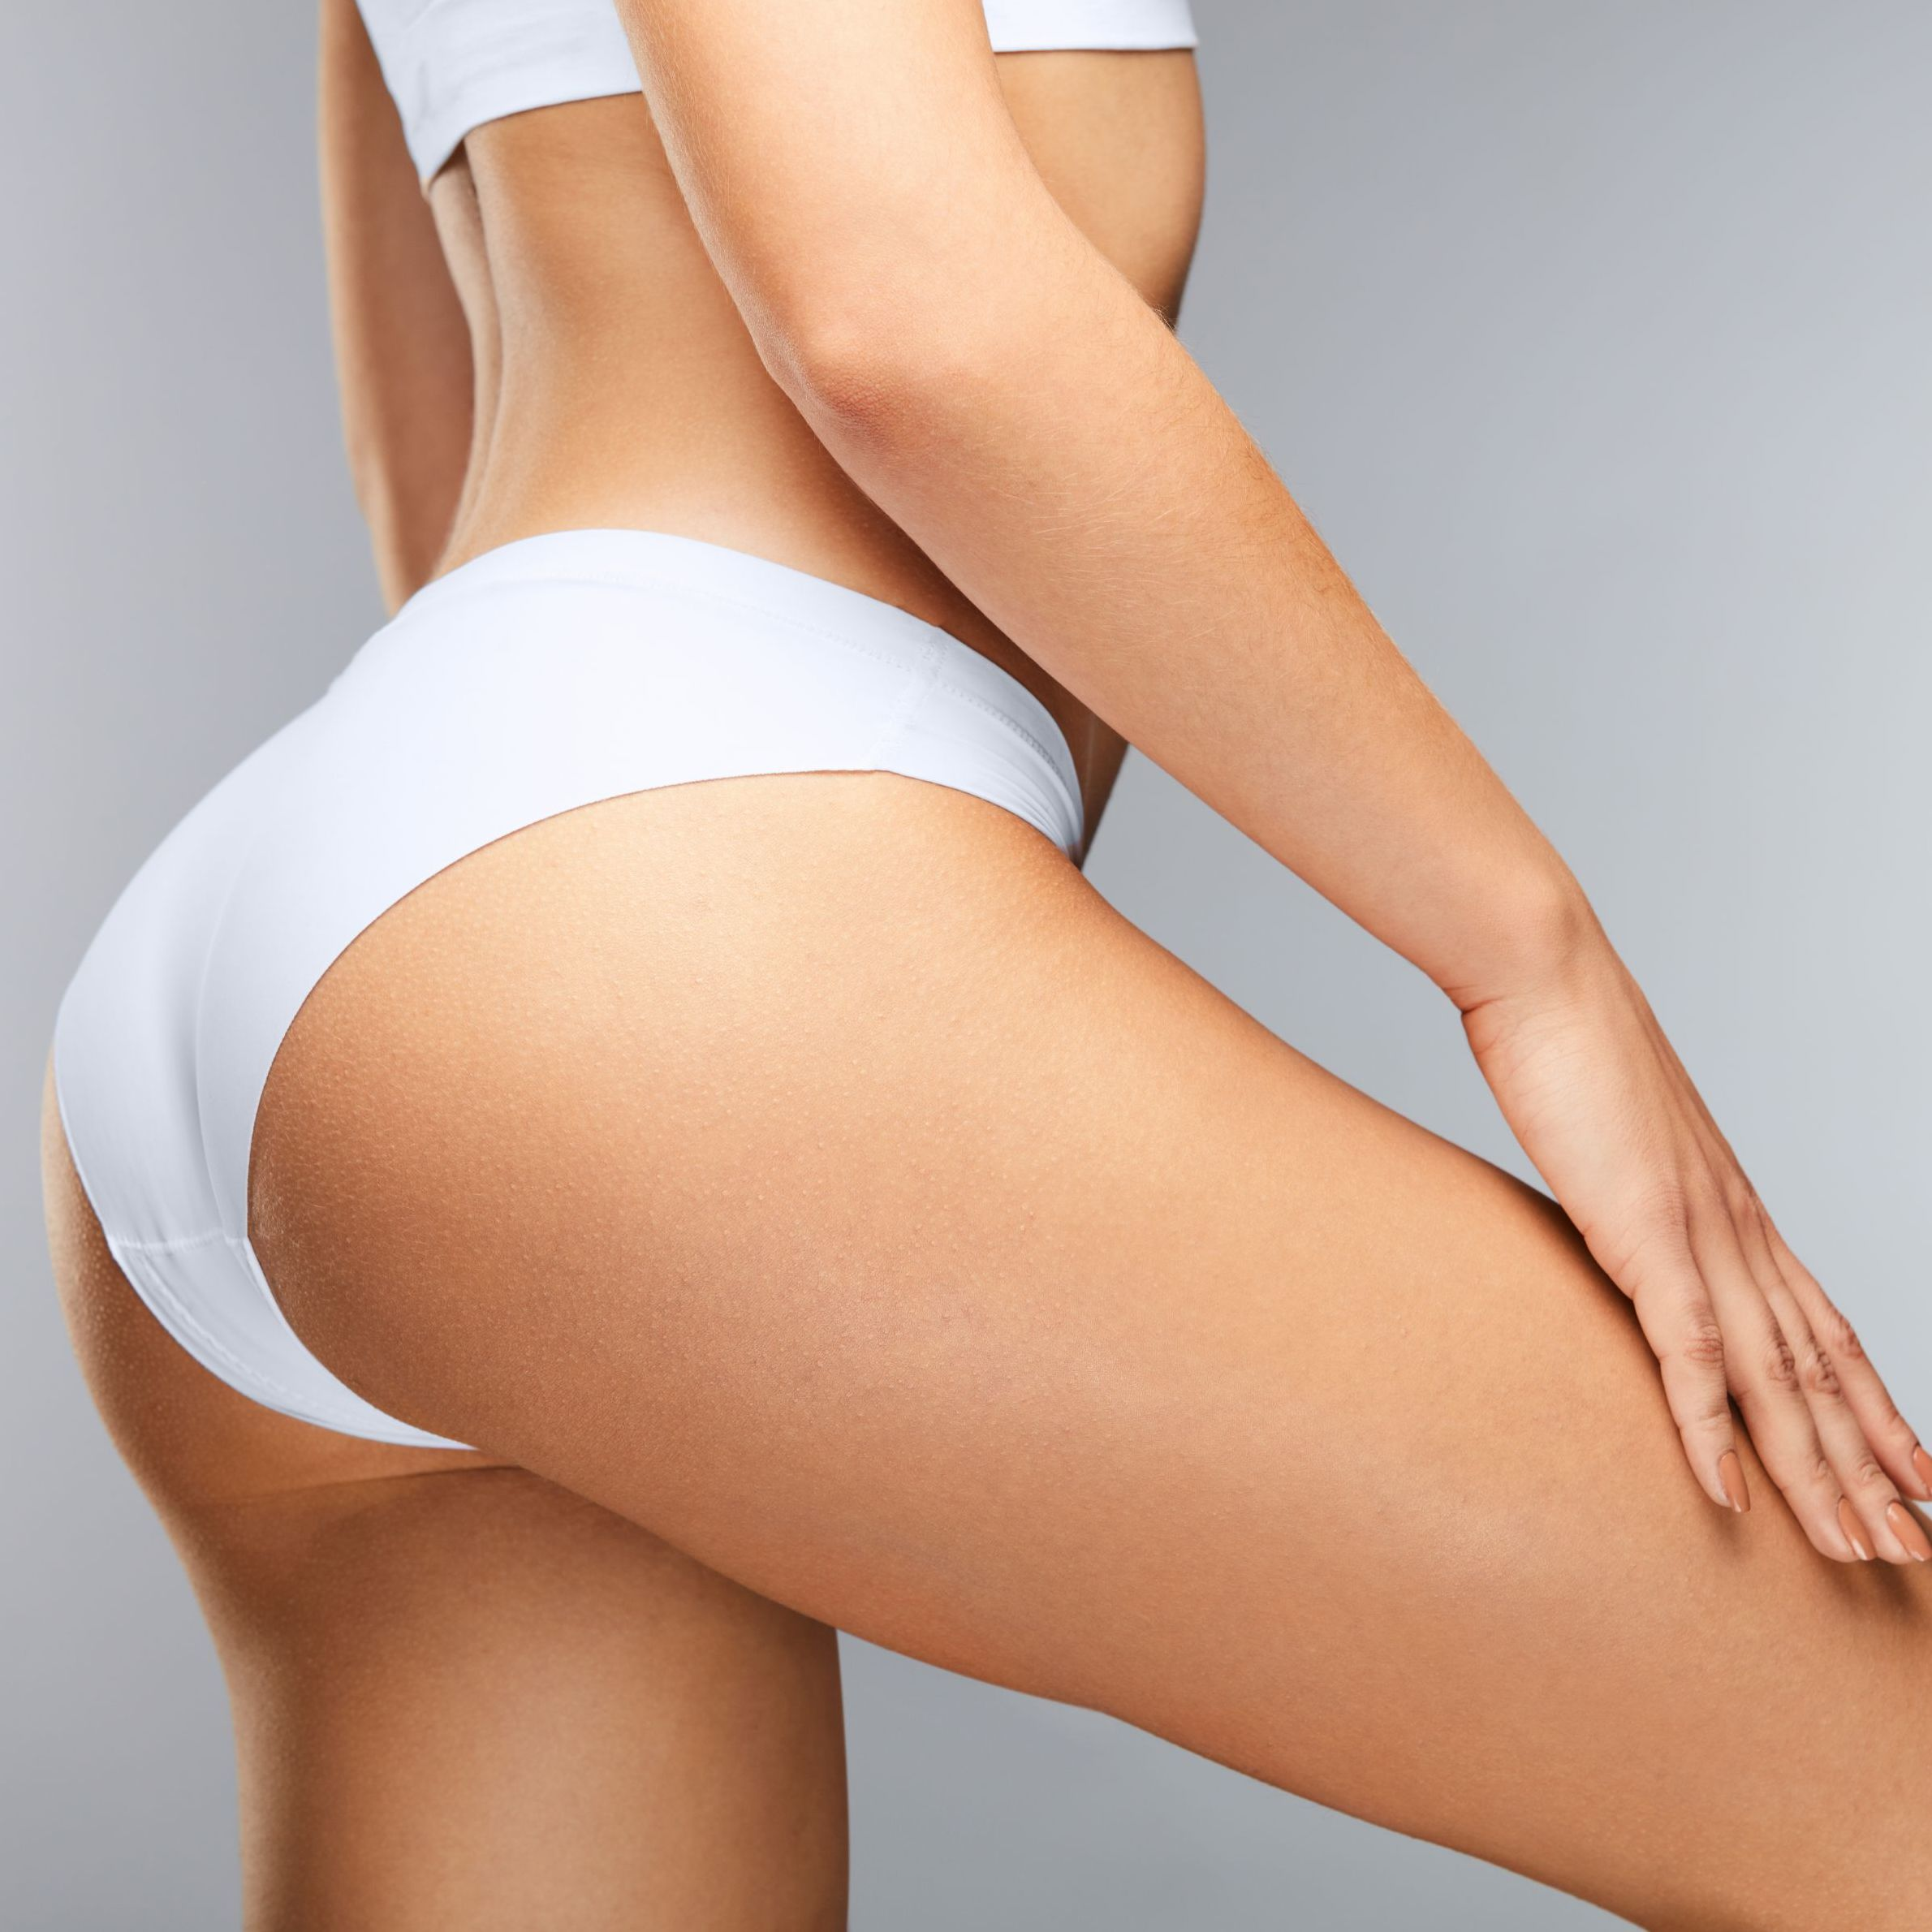 LIPOSUCTION - This procedure removes stubborn fatty tissue from areas such as abdomen and thighs that aren't responding adequately to diet or exercise.